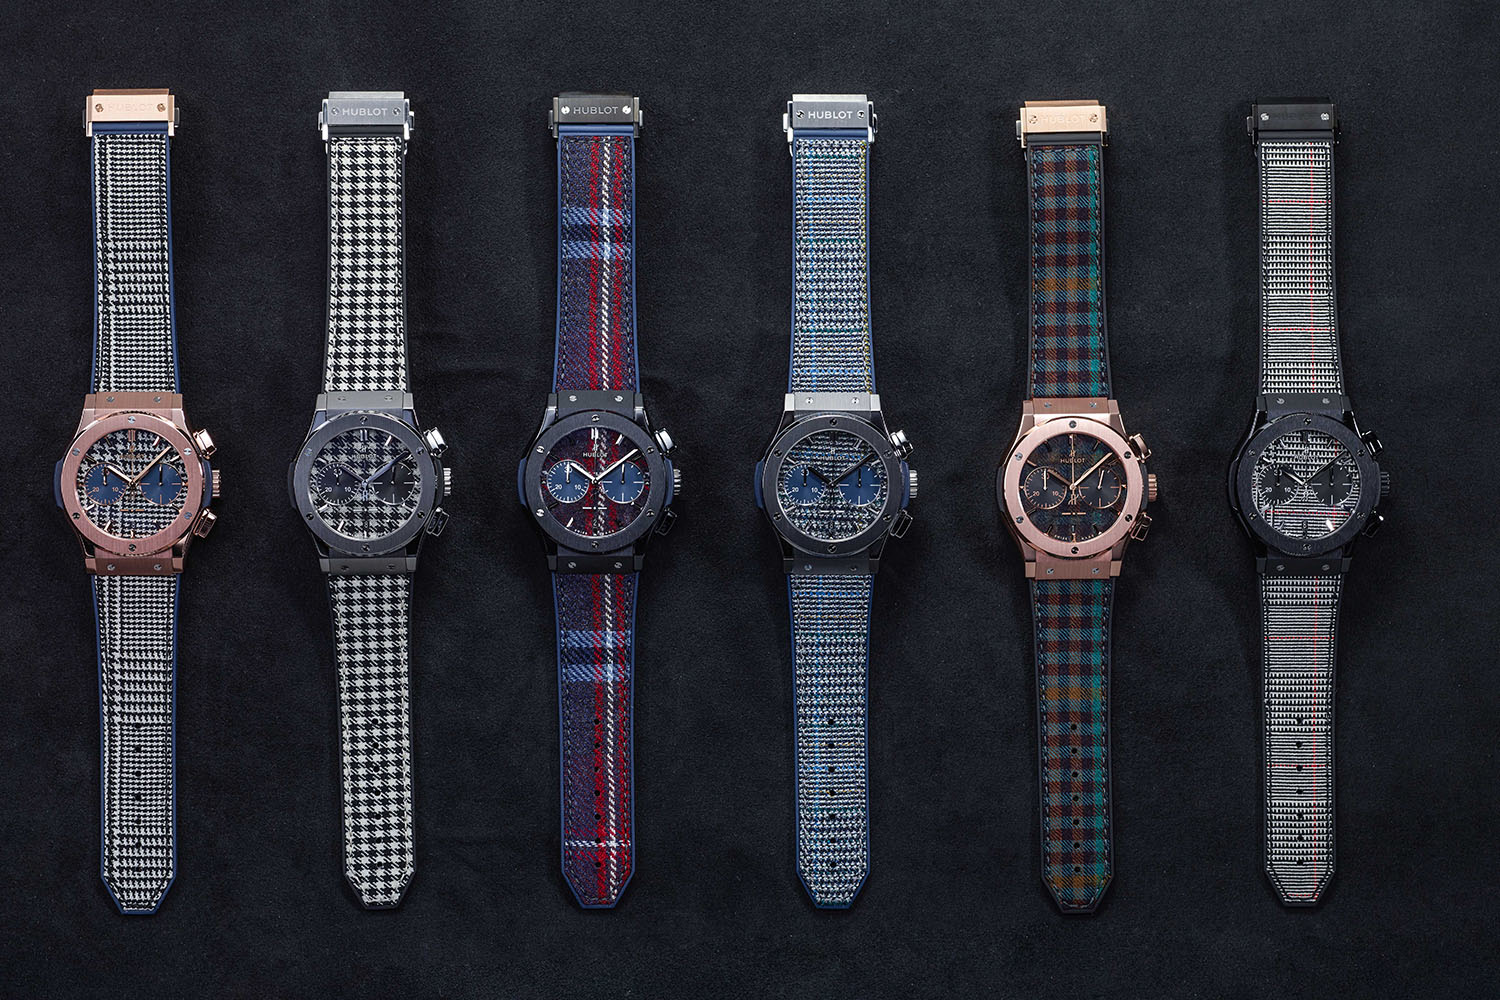 """d555e35c8 The Hublot Classic Fusion Italia Independent collection comprises 6  watches, in 3 different materials: titanium with black and white  """"Houndstooth"""" or Blue ..."""